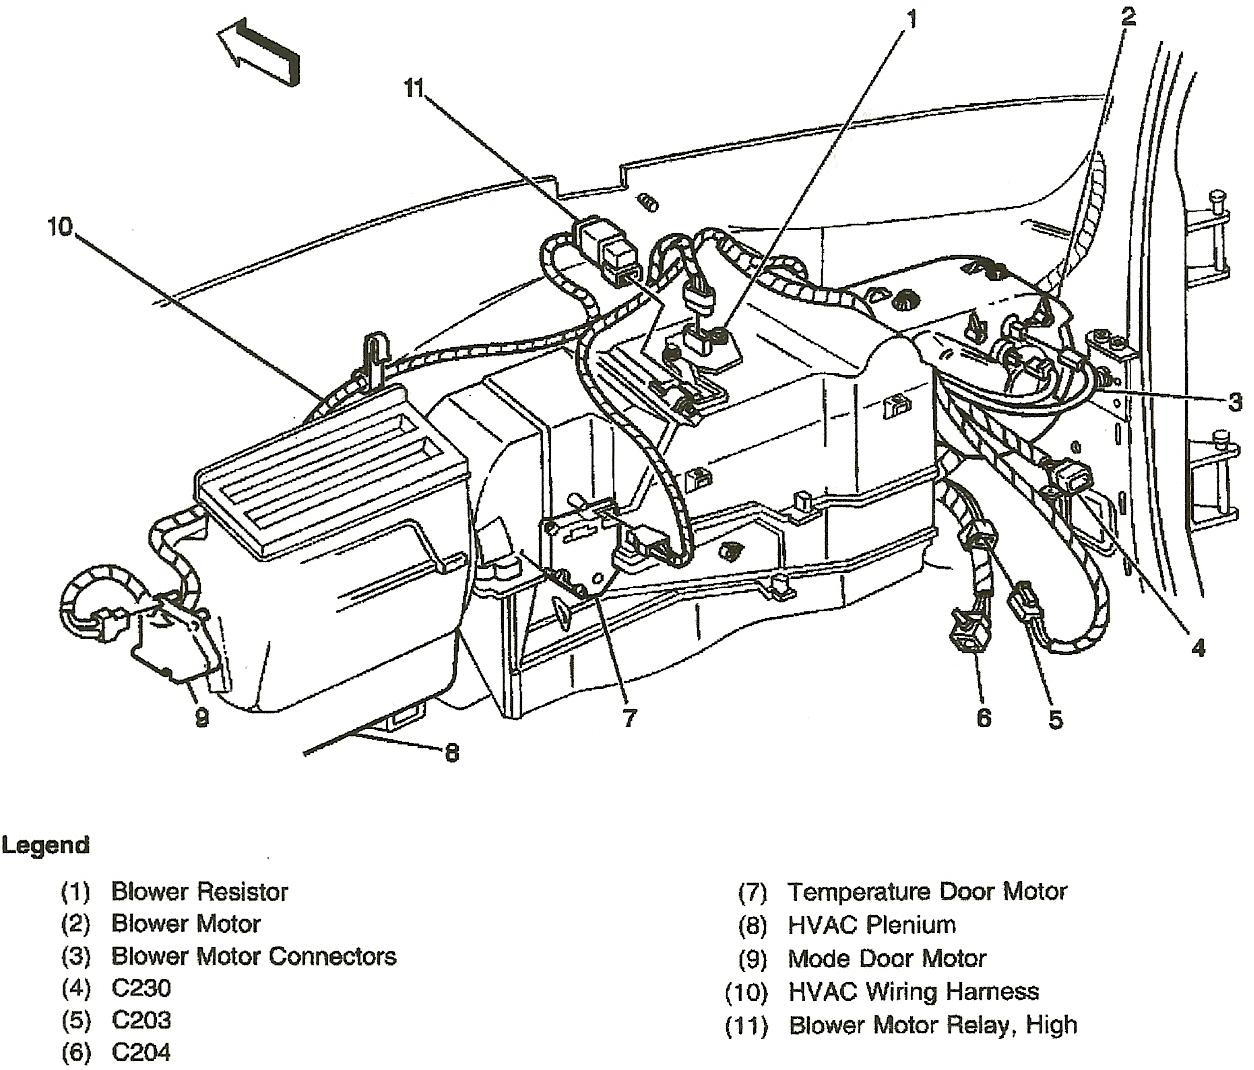 2003 Chevy Blower Resistor Wiring Diagram - Wiring Diagram • on 2003 trailblazer back bumper, 2003 trailblazer starting diagram, 2008 trailblazer wiring diagram, 2003 trailblazer brake line diagram, 2003 trailblazer radio diagram, 2003 trailblazer exhaust diagram, 03 trailblazer wiring diagram, 2003 trailblazer suspension diagram, 2003 trailblazer radiator, 2002 trailblazer wiring diagram, 2003 trailblazer valves, 2003 trailblazer fuel pump, chevy trailblazer trailer wiring diagram, 2003 trailblazer seat diagram, 2003 trailblazer speakers diagram, 2003 trailblazer ignition, 2003 trailblazer cooling system, 2003 trailblazer brake lights not working, 2003 trailblazer radio fuse, 2003 trailblazer trailer plug,